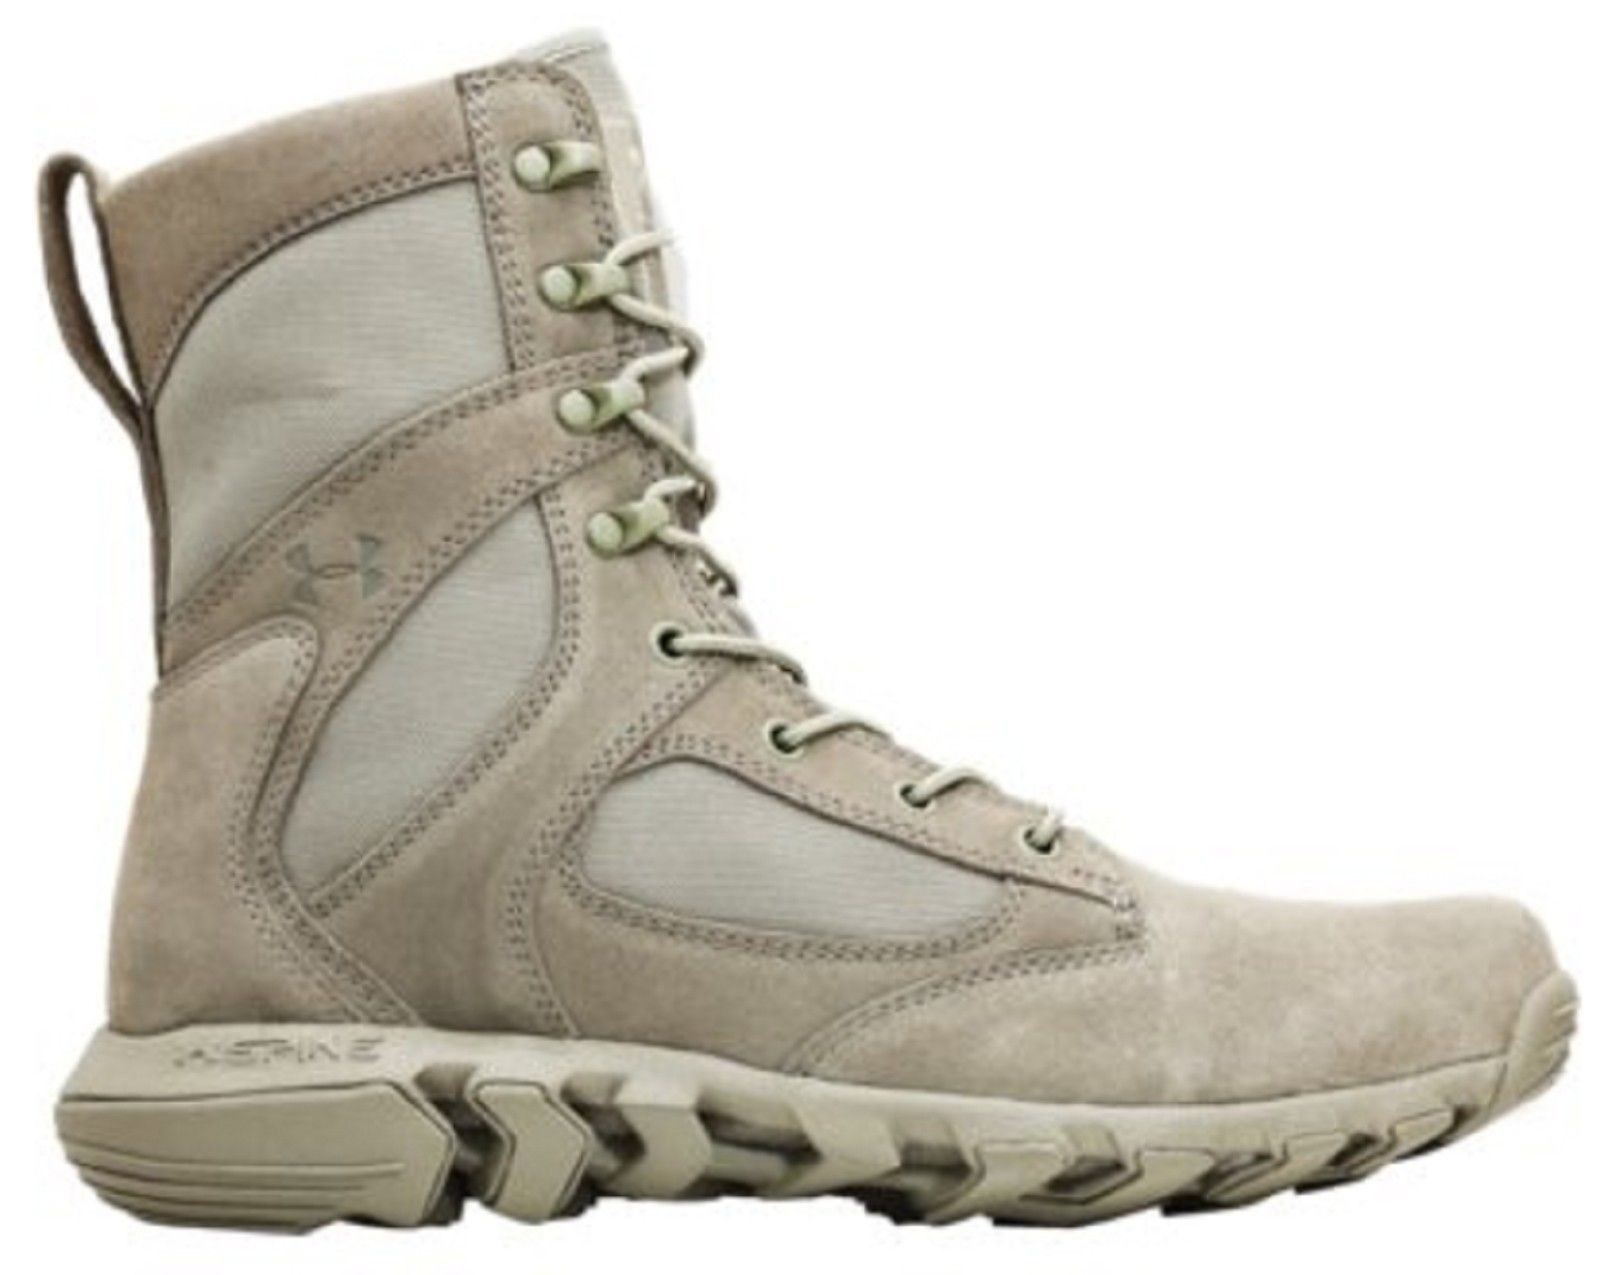 6be10cdecc3 Under Armour Alegent Tactical Duty Boots - Men's Military Style ...